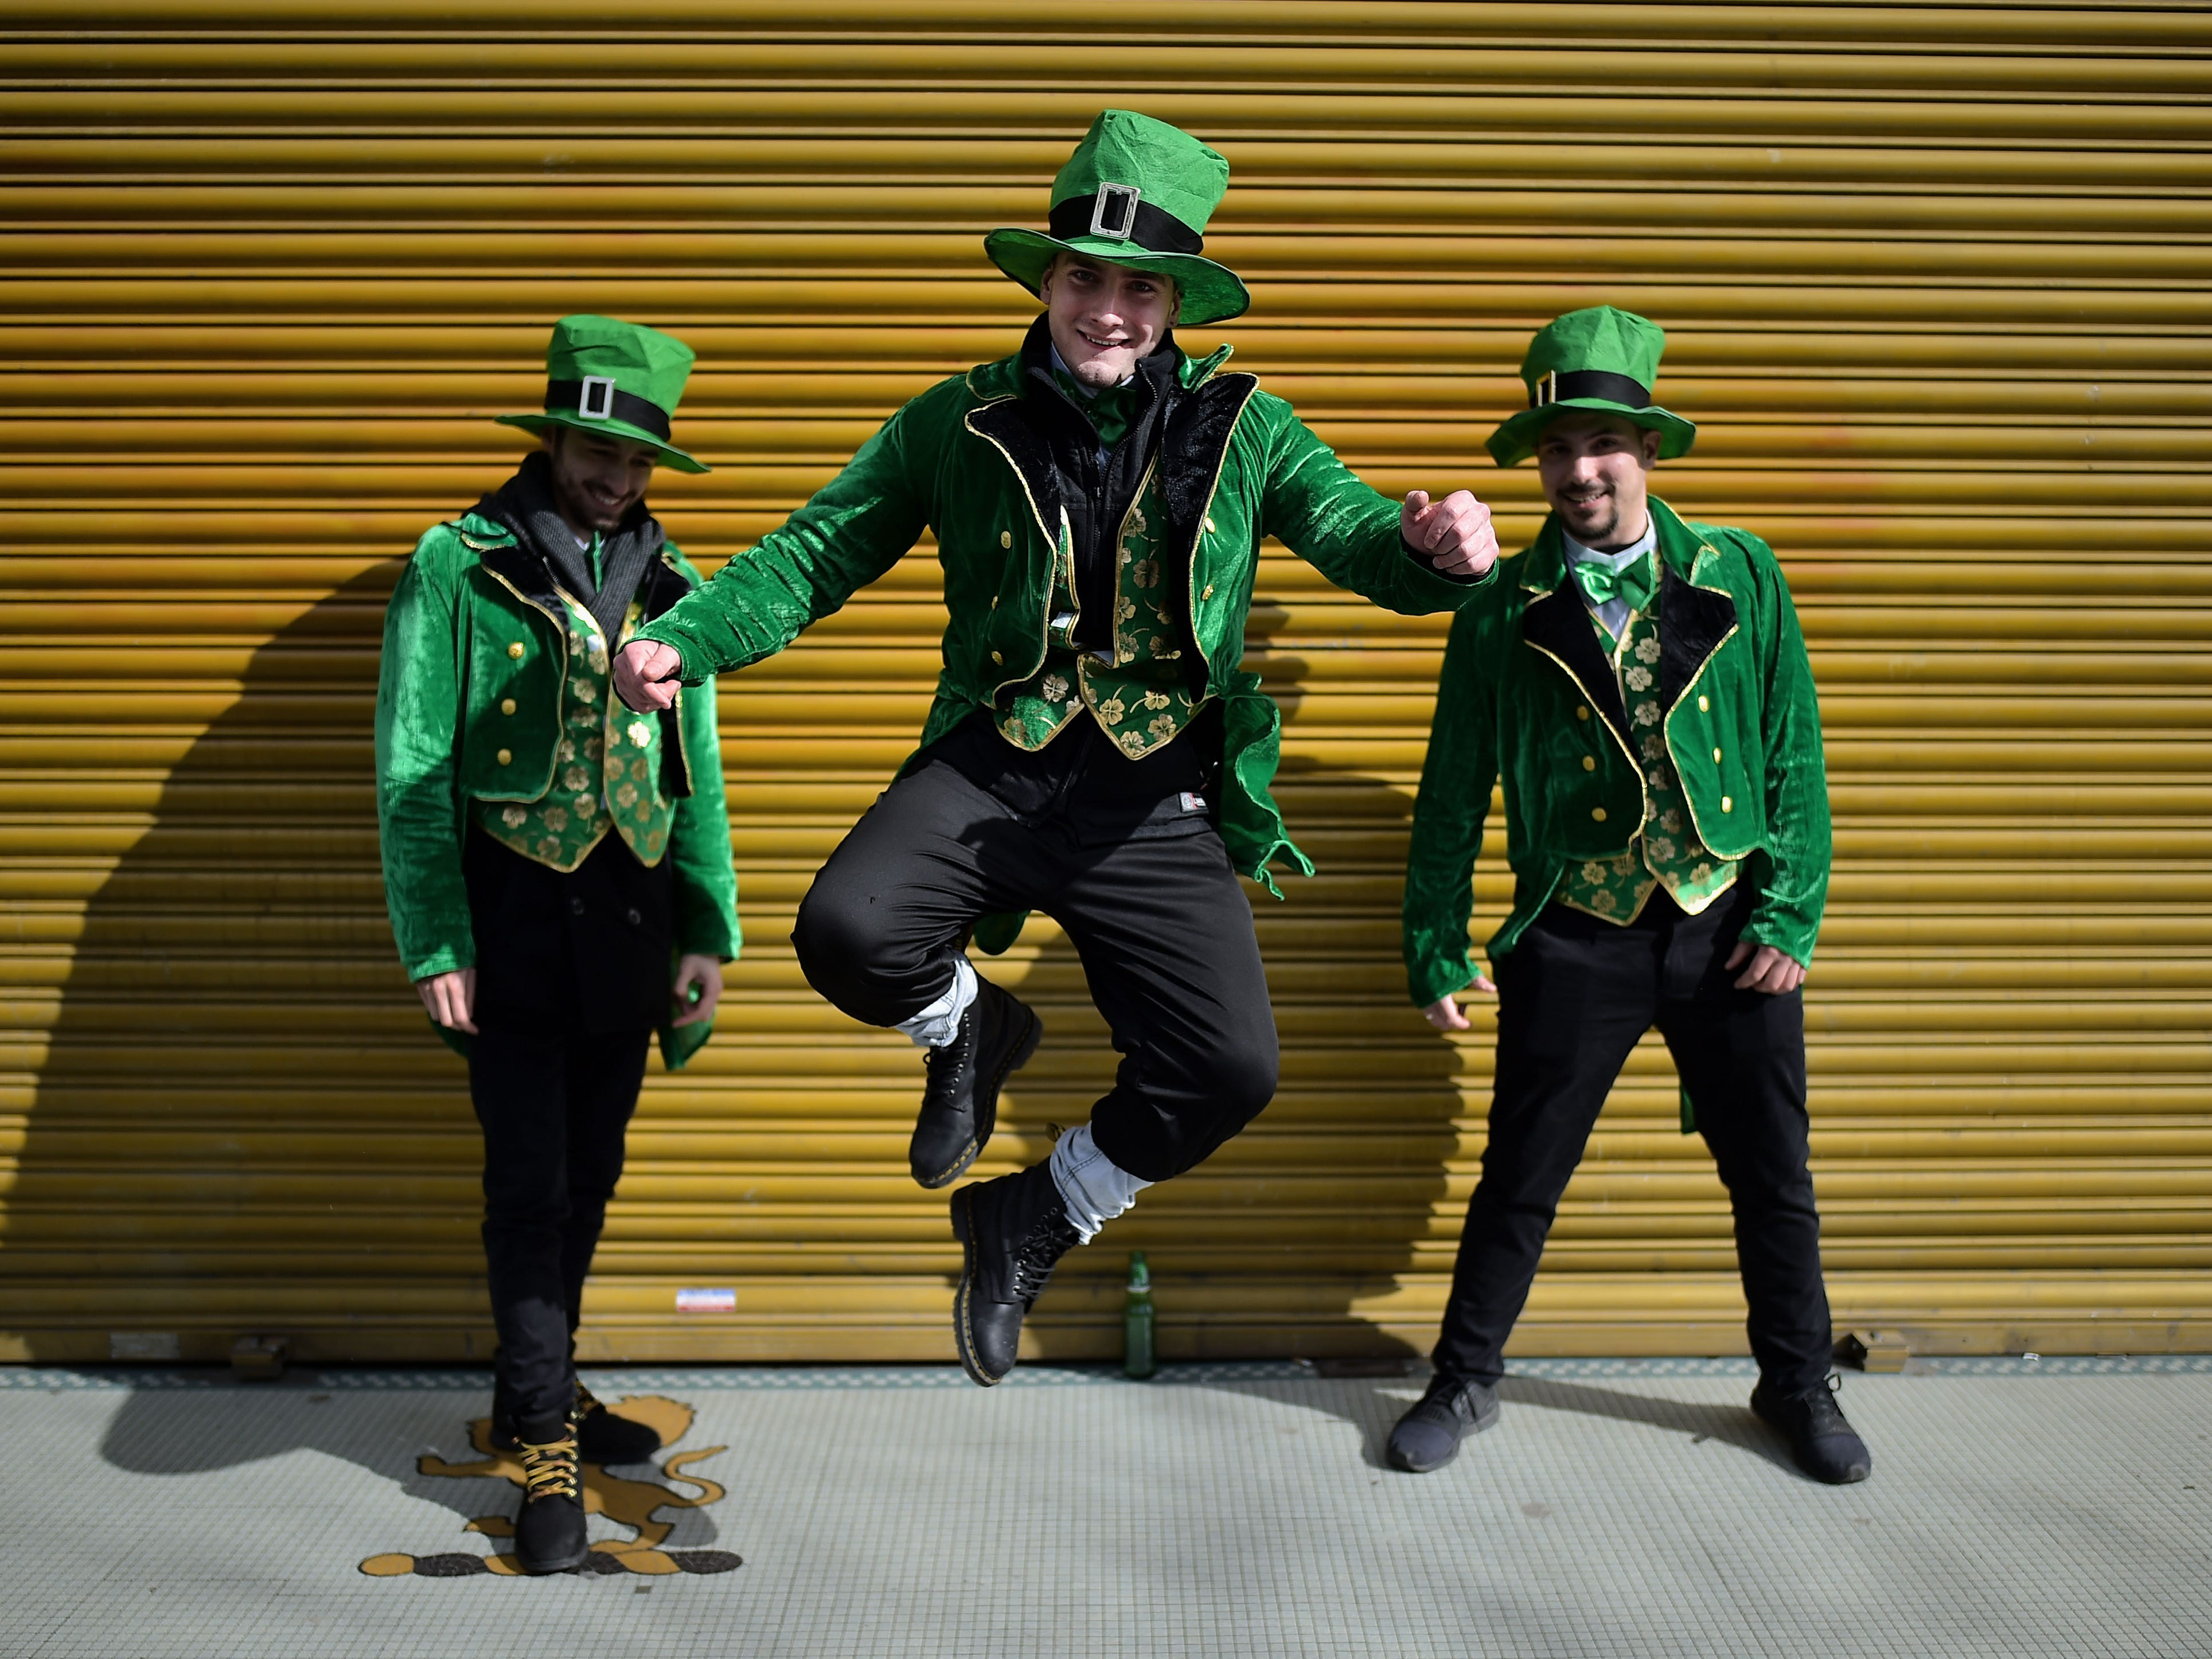 Revelers attend the Saint Patrick's Day parade on March 17, 2019 in Dublin, Ireland.